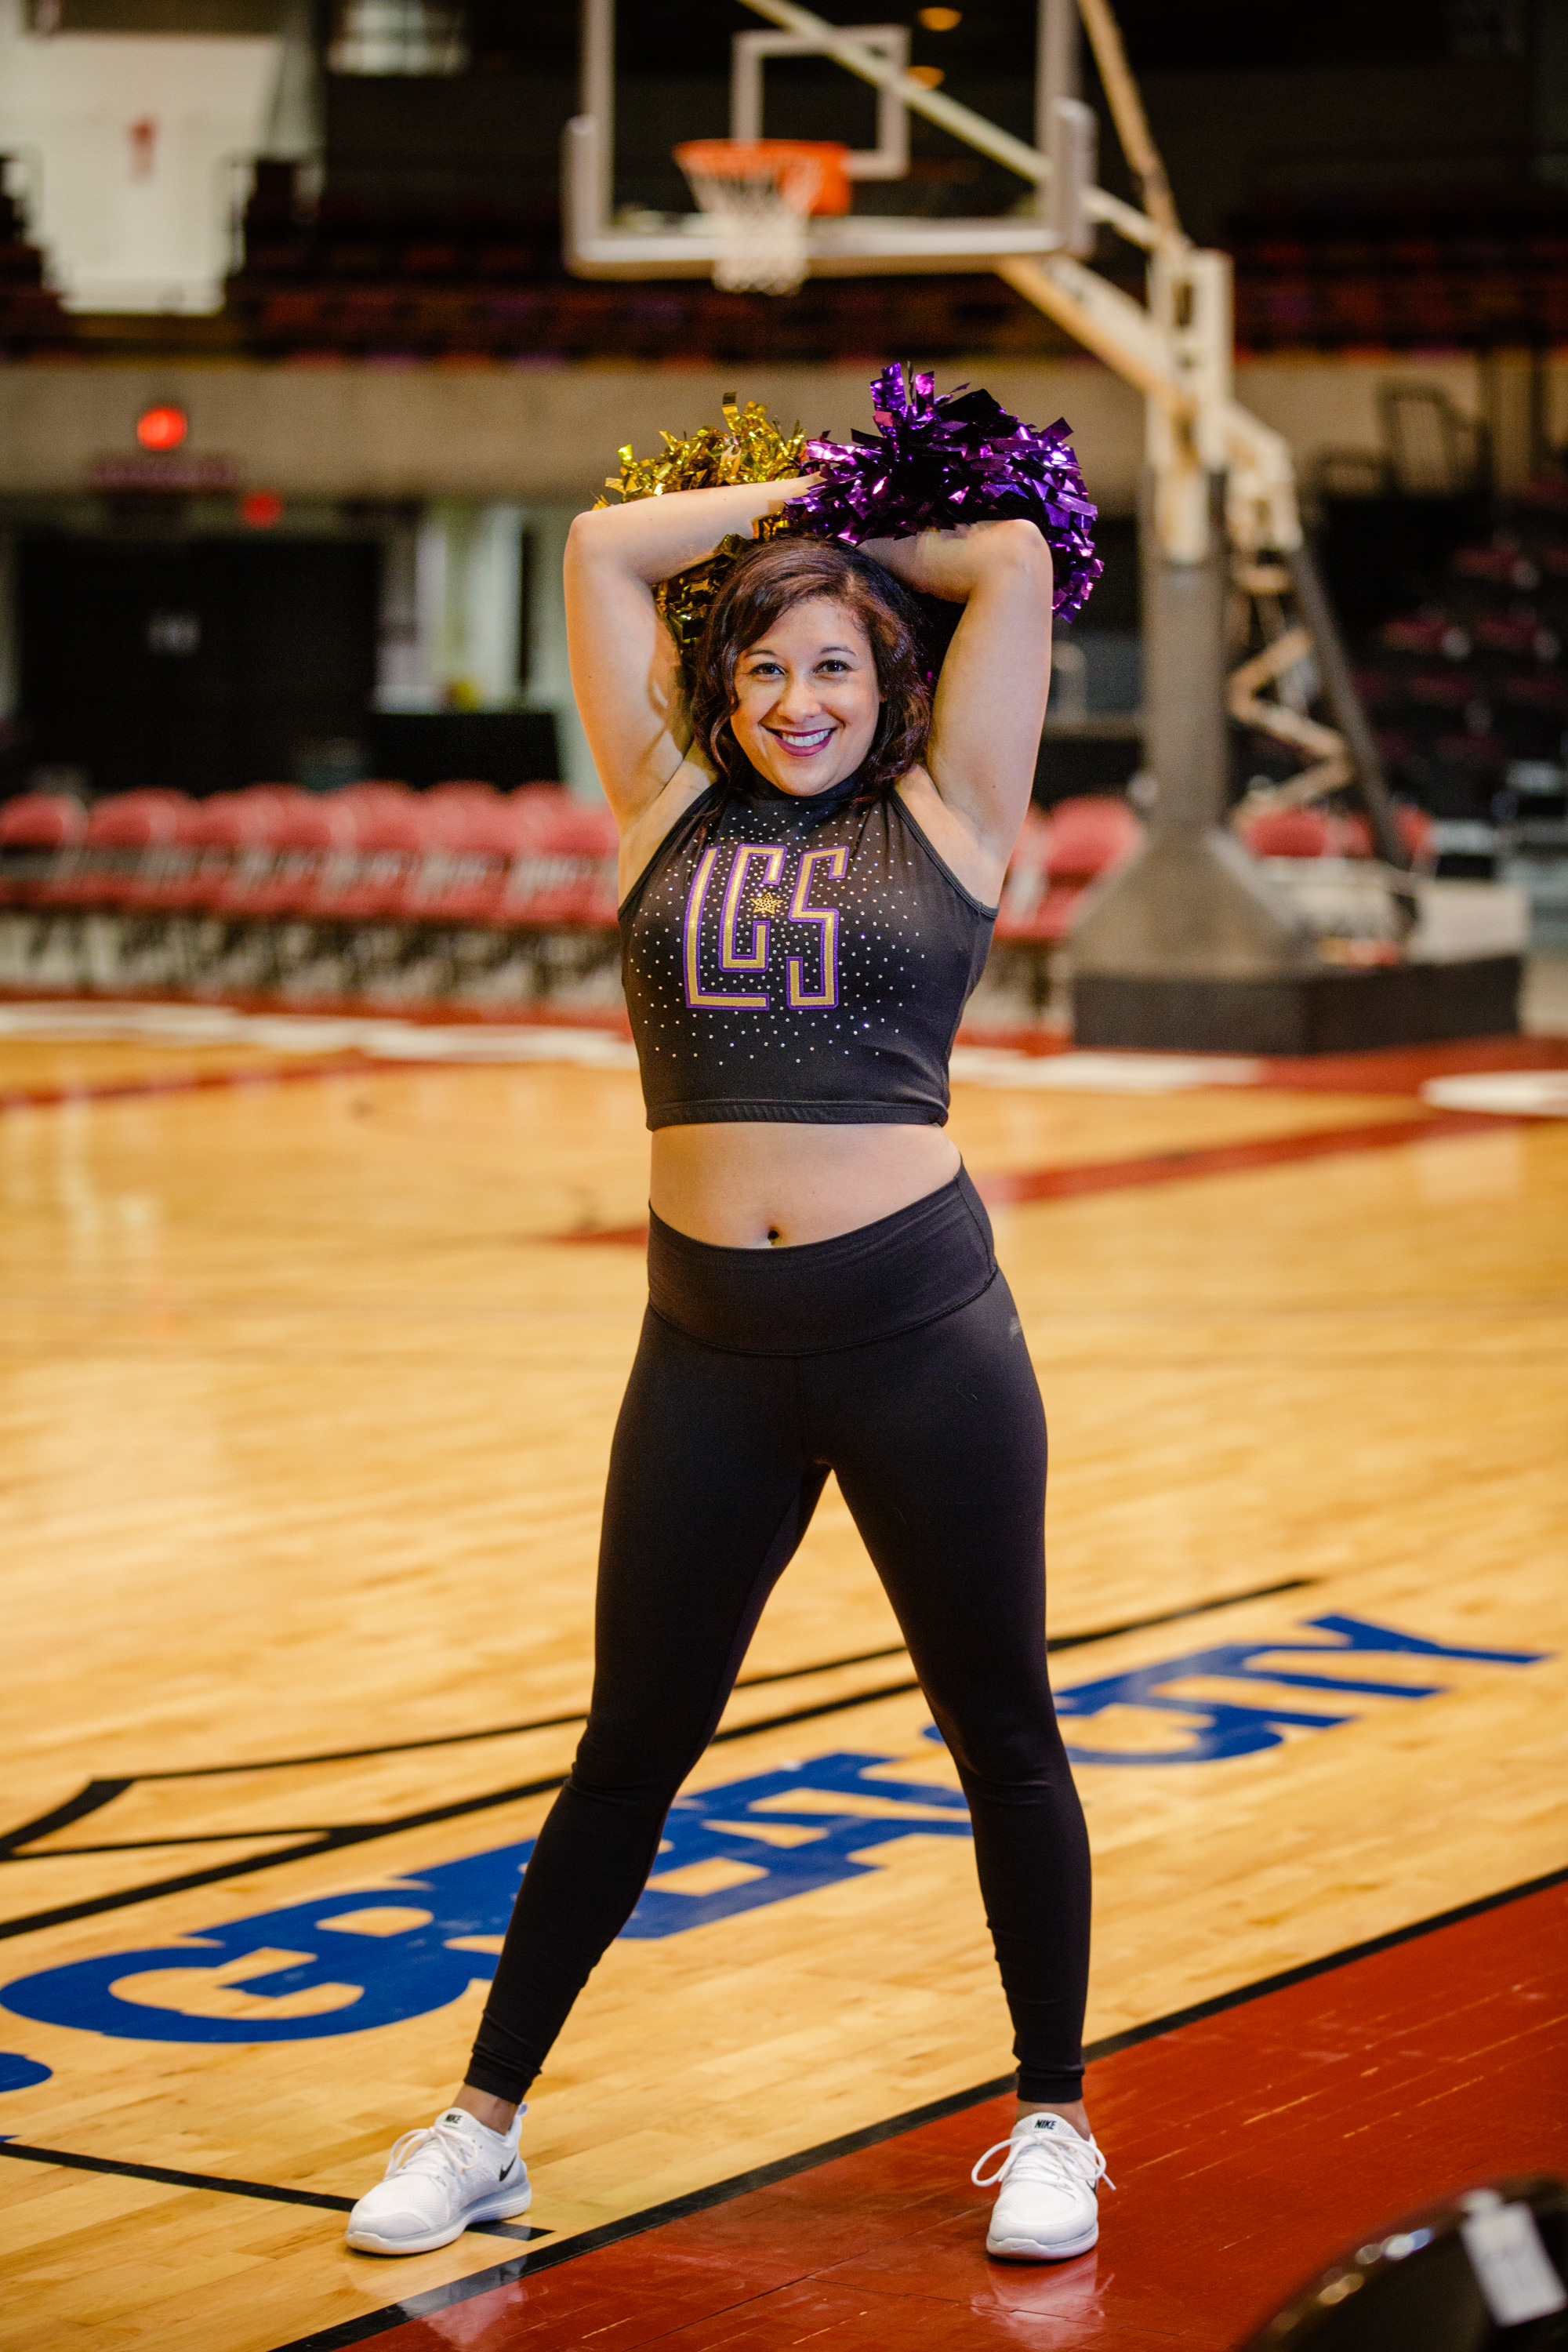 Ashley Cary - Washington, ILUniversity of Wisconsin-La CrosseStudio Dancer since age 3 (jazz, tap, hip hop, and ballet), High School Dance Team, UWL Cheer, dancer for Spartans and Rough Rider's